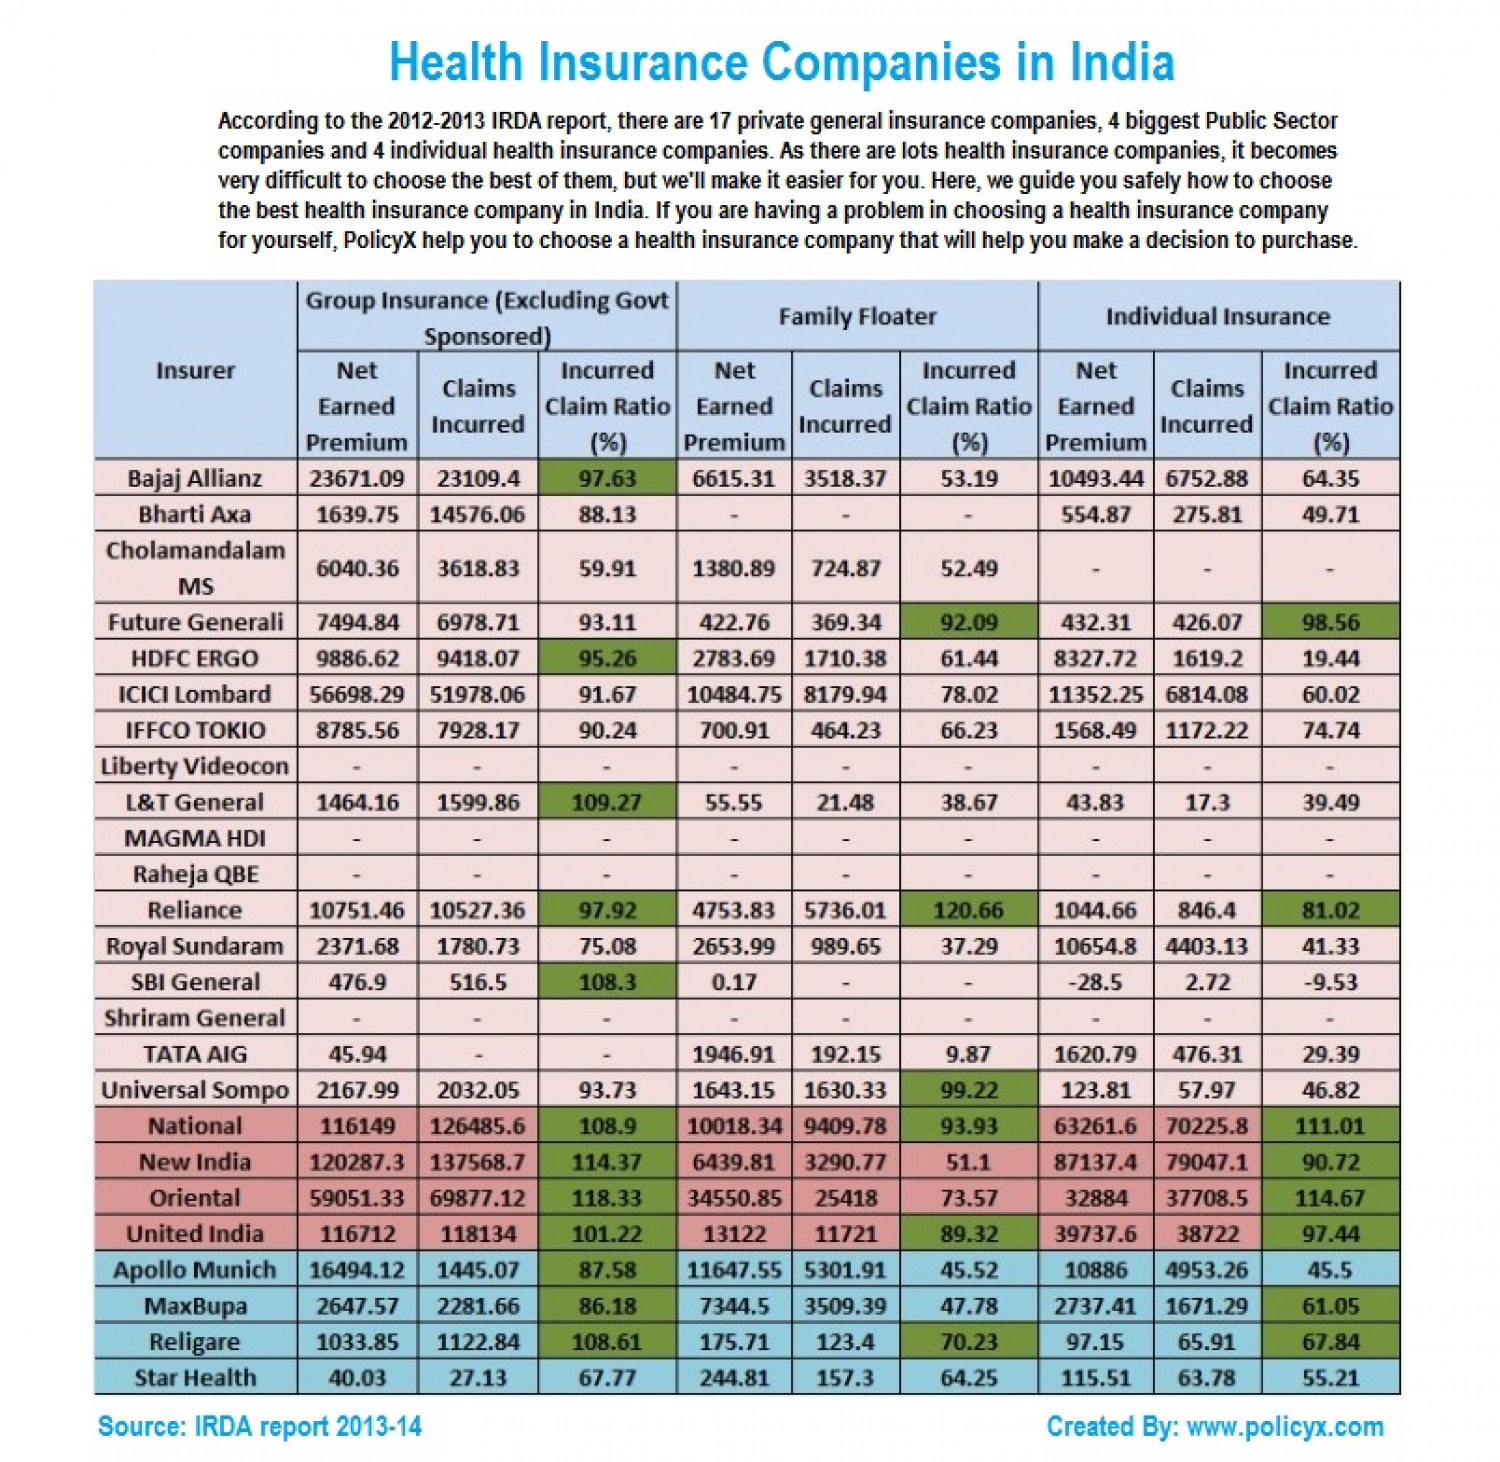 Health Insurance Companies in India | Visual.ly